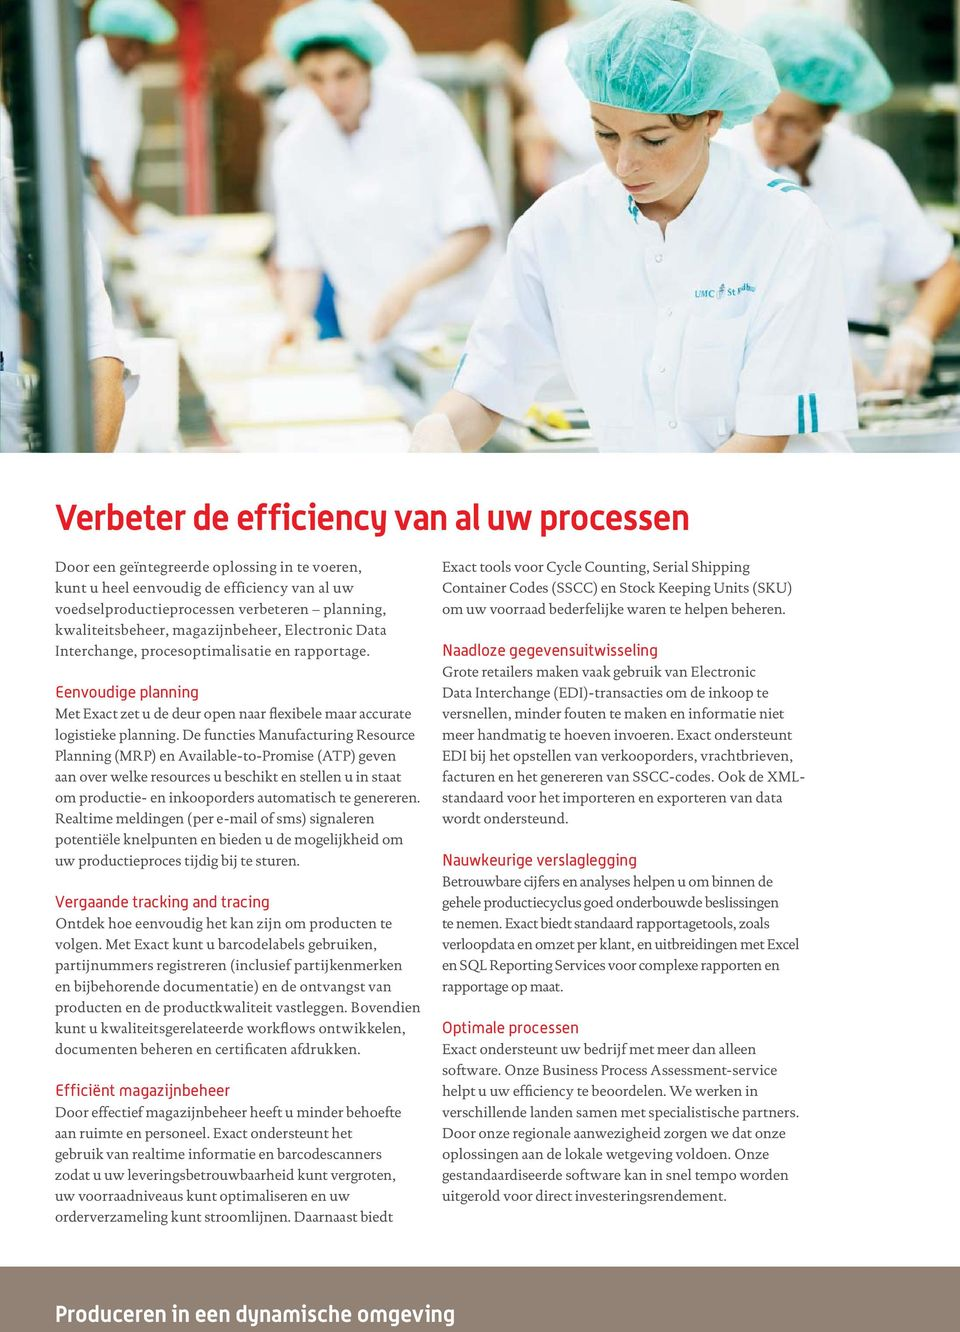 De functies Manufacturing Resource Planning (MRP) en Available-to-Promise (ATP) geven aan over welke resources u beschikt en stellen u in staat om productie- en inkooporders automatisch te genereren.